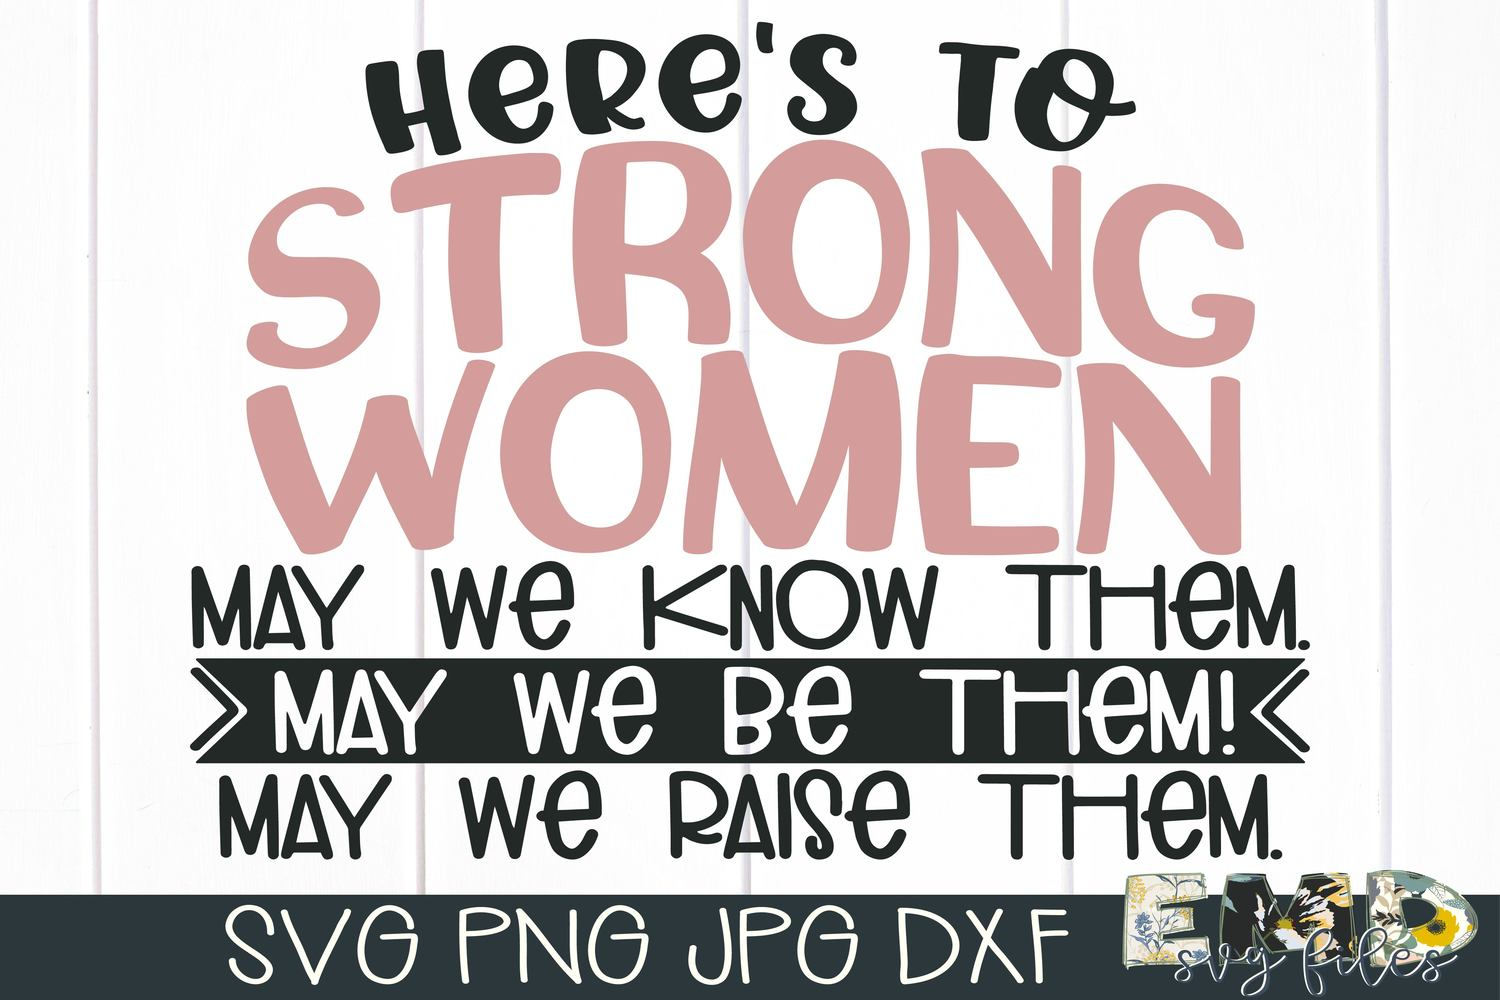 Strong Women Svg   Inspirational Svg Jpg Png Dxf example image 2